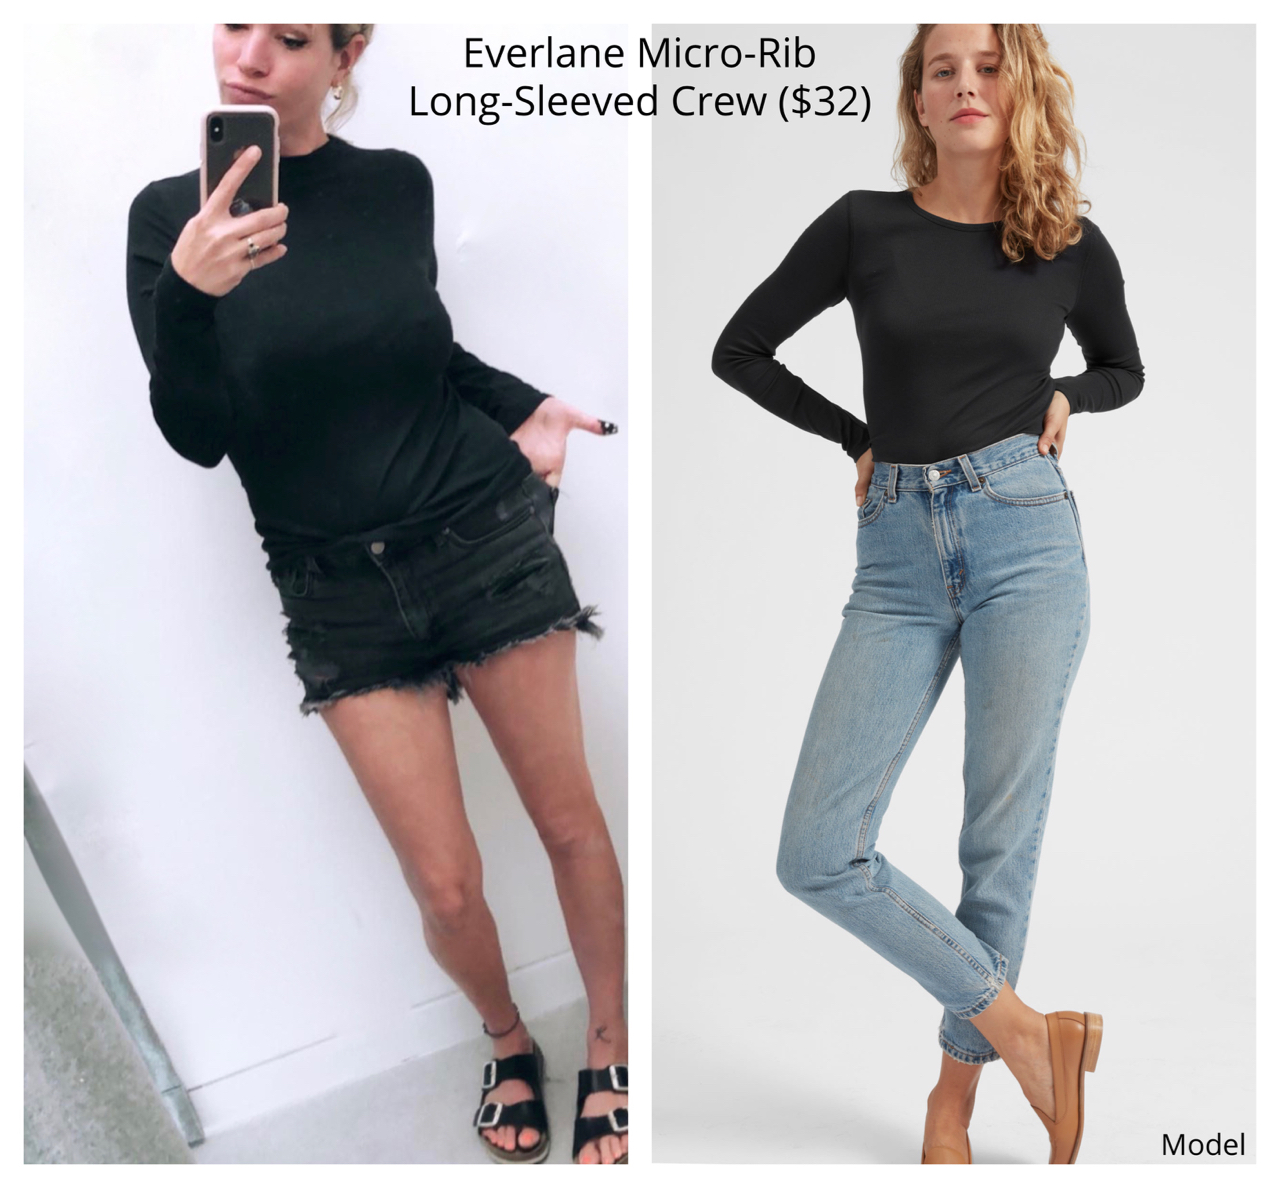 everlane new arrivals fall 2019